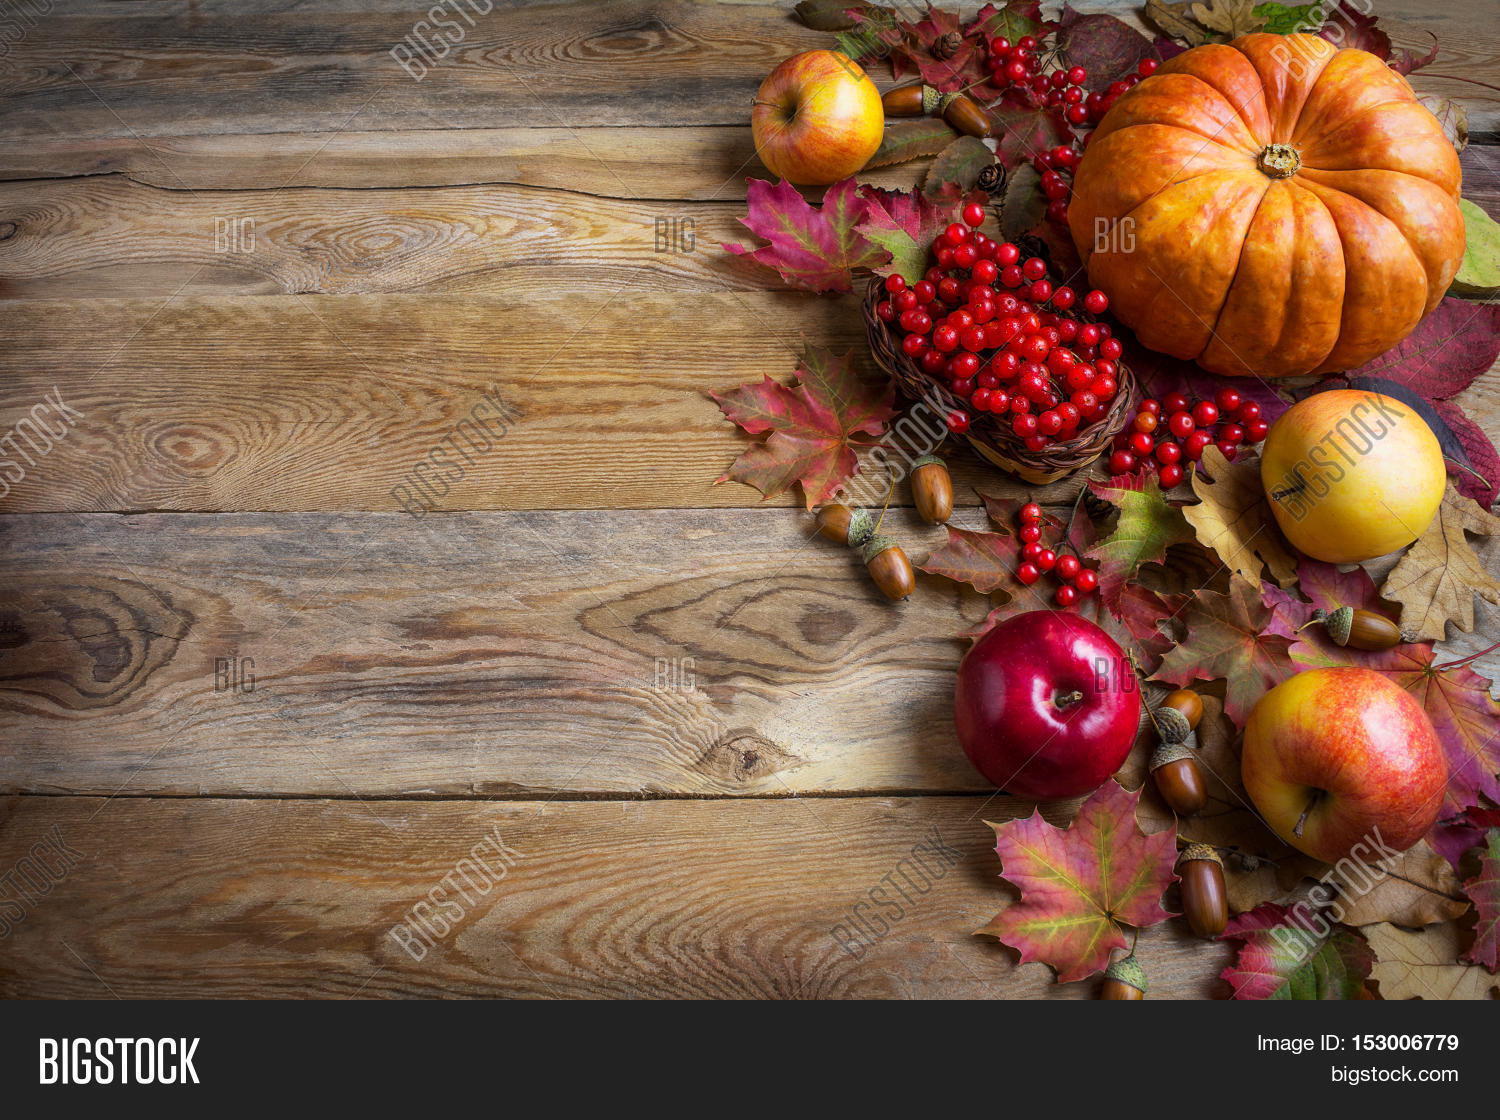 thanksgiving greeting images